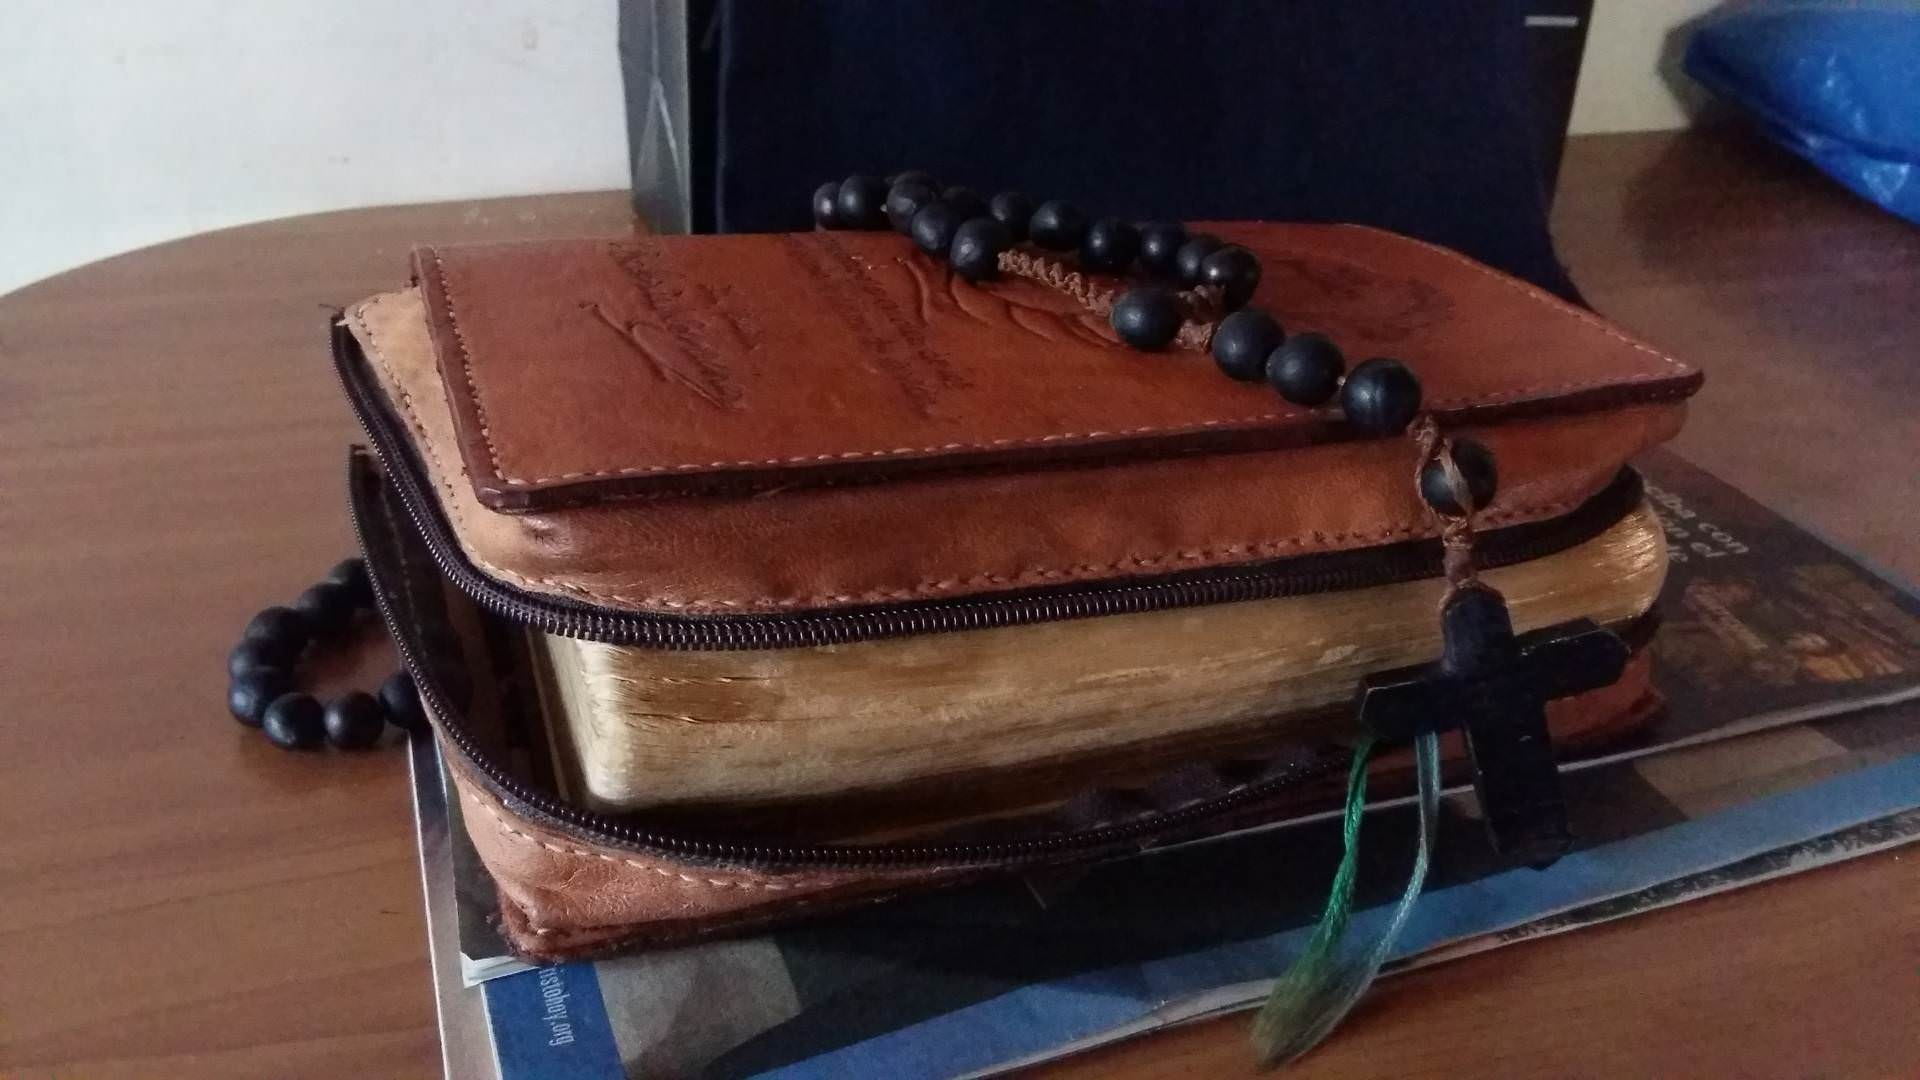 bible, rosary beads, breviary, word of god, table, black rosary